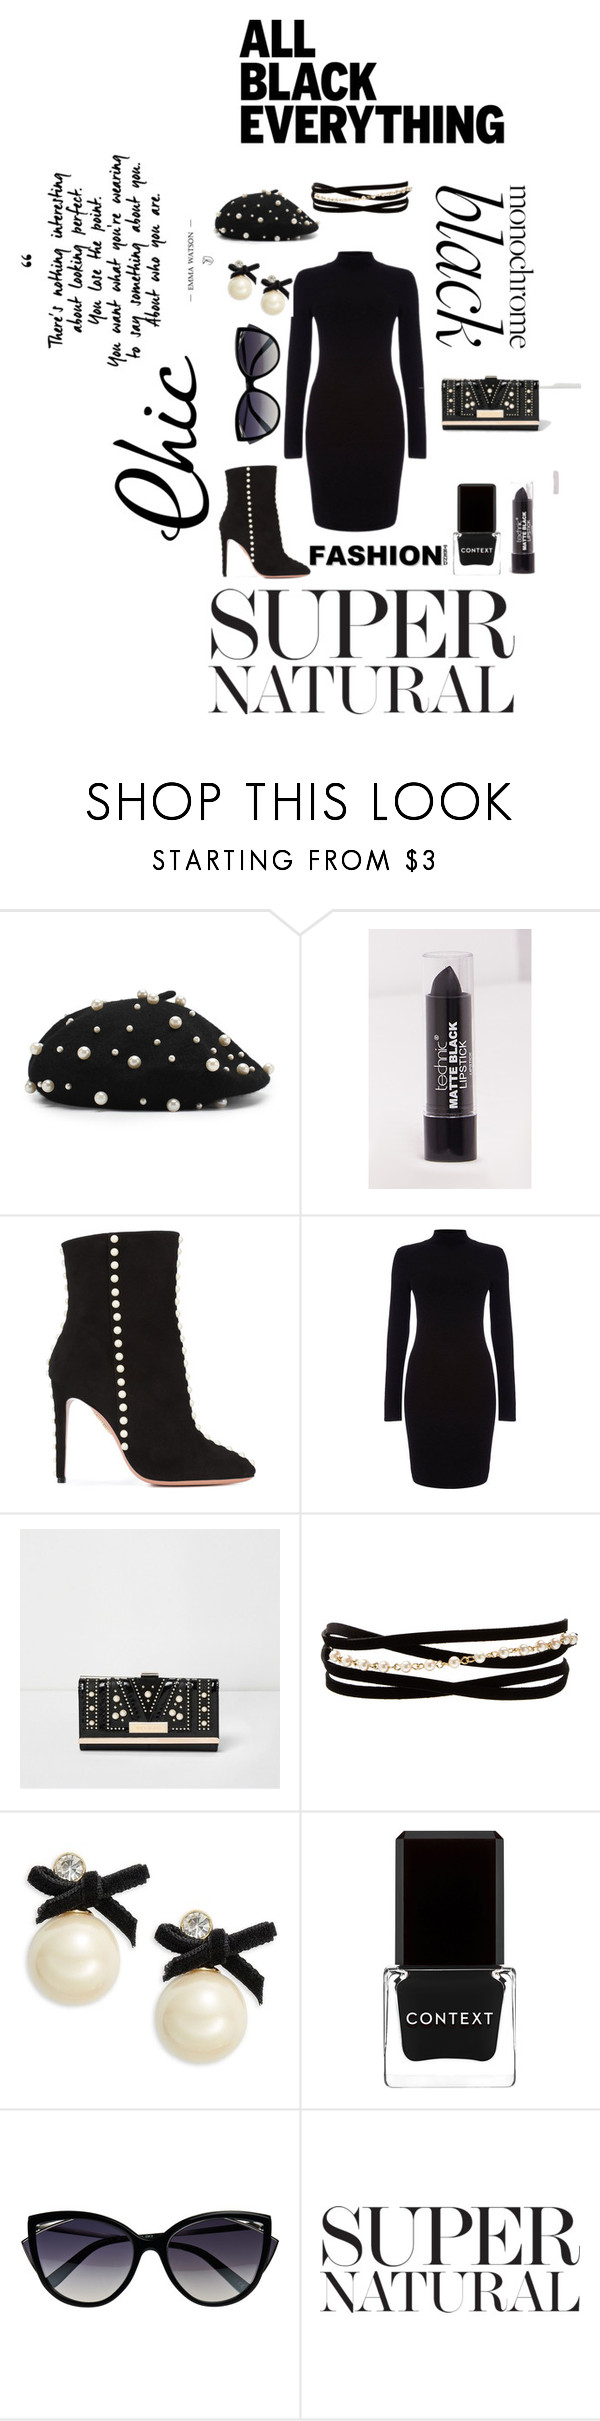 """ALL BLACK EVERYTHING"" by lakisha-34 ❤ liked on Polyvore featuring Aquazzura, River Island, Kenneth Jay Lane, Kate Spade, Context and La Perla"